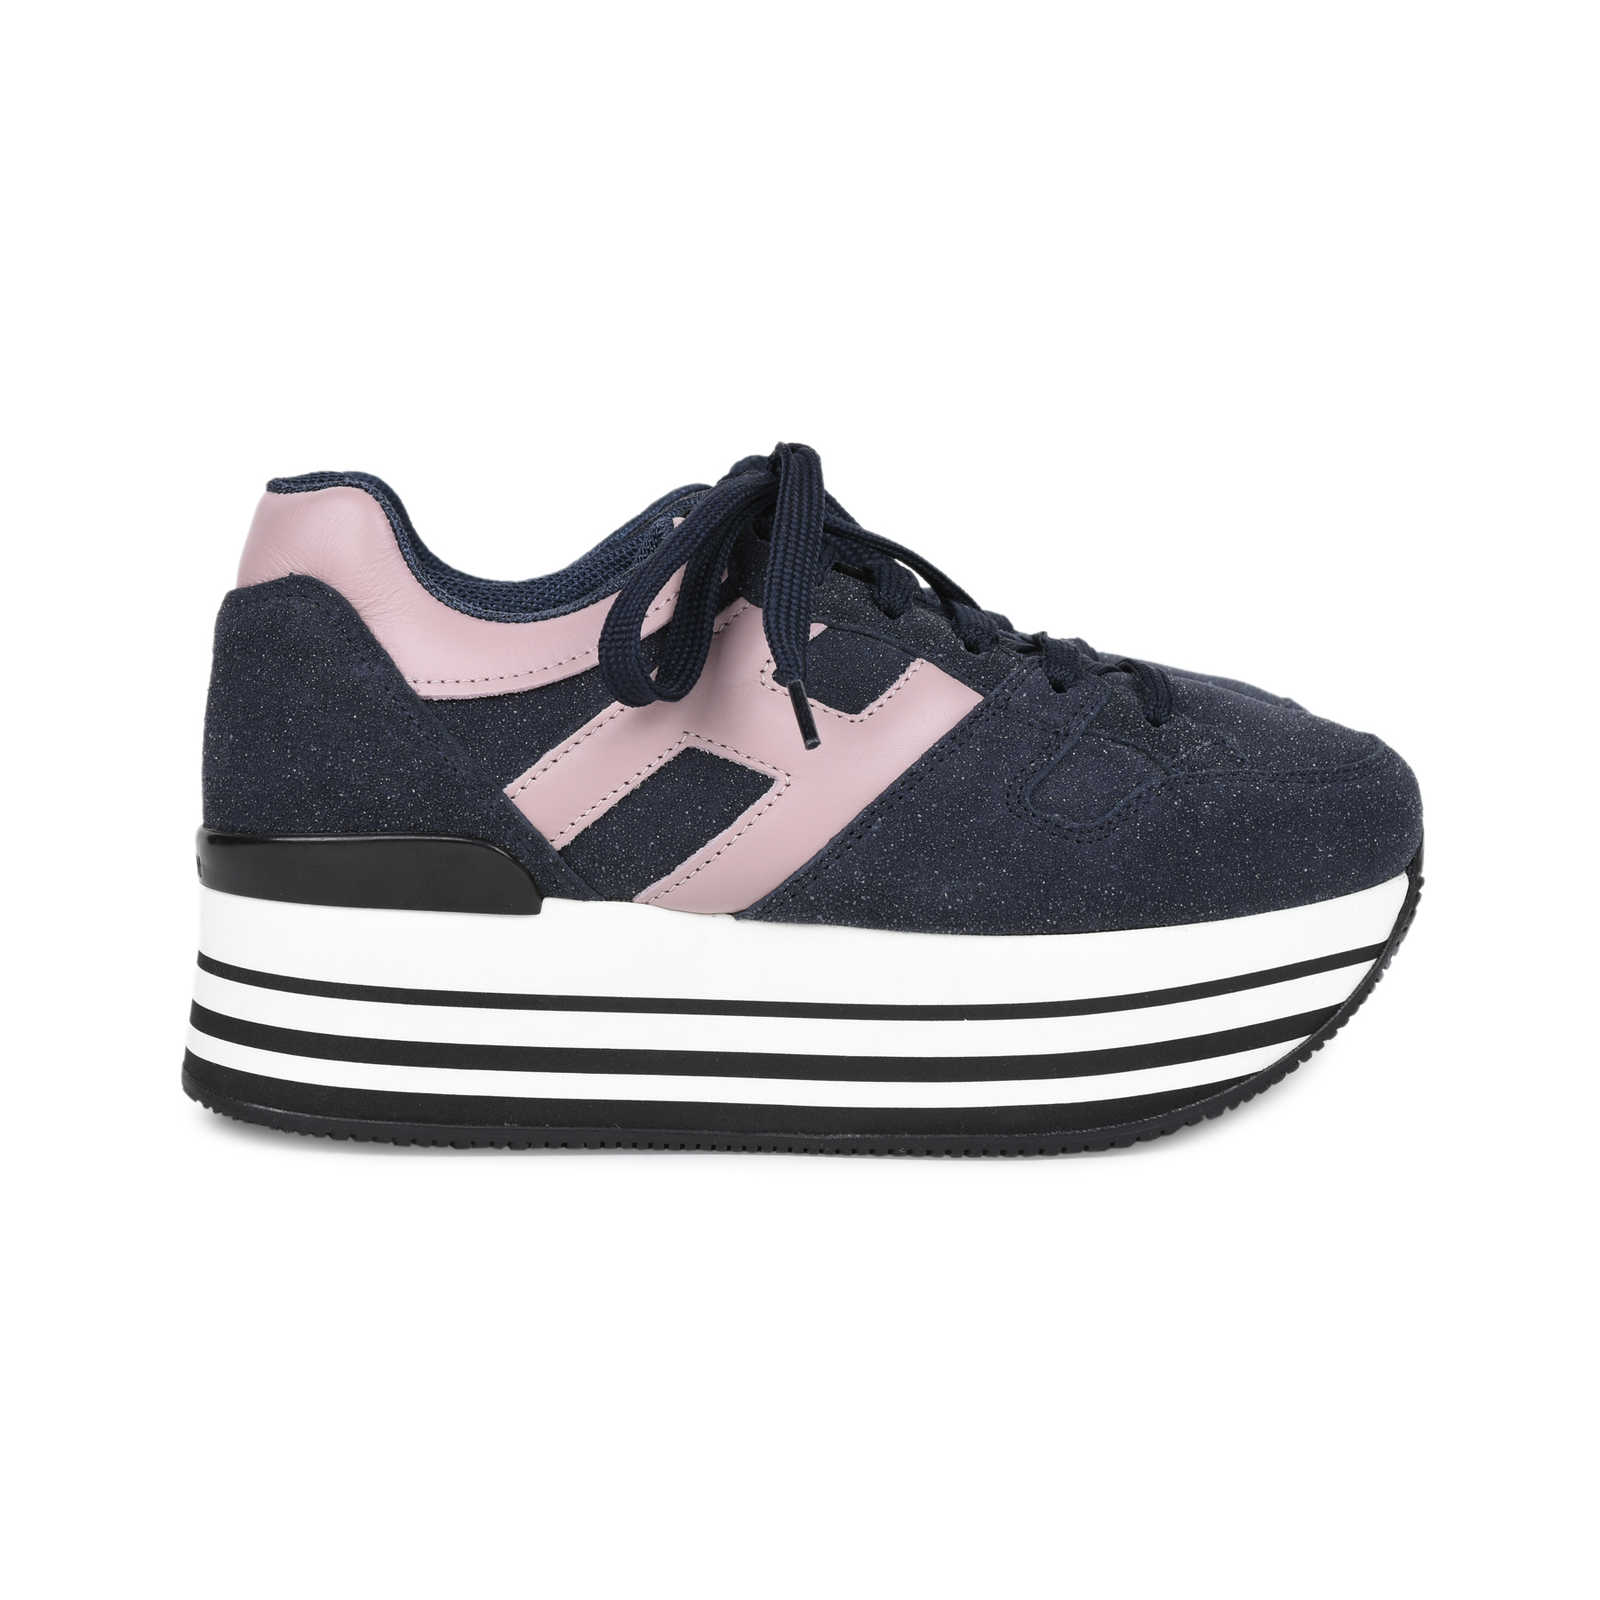 163a77eed5 ... Authentic Second Hand Hogan Maxi 222 Platform Sneakers (PSS-200-01521)  ...